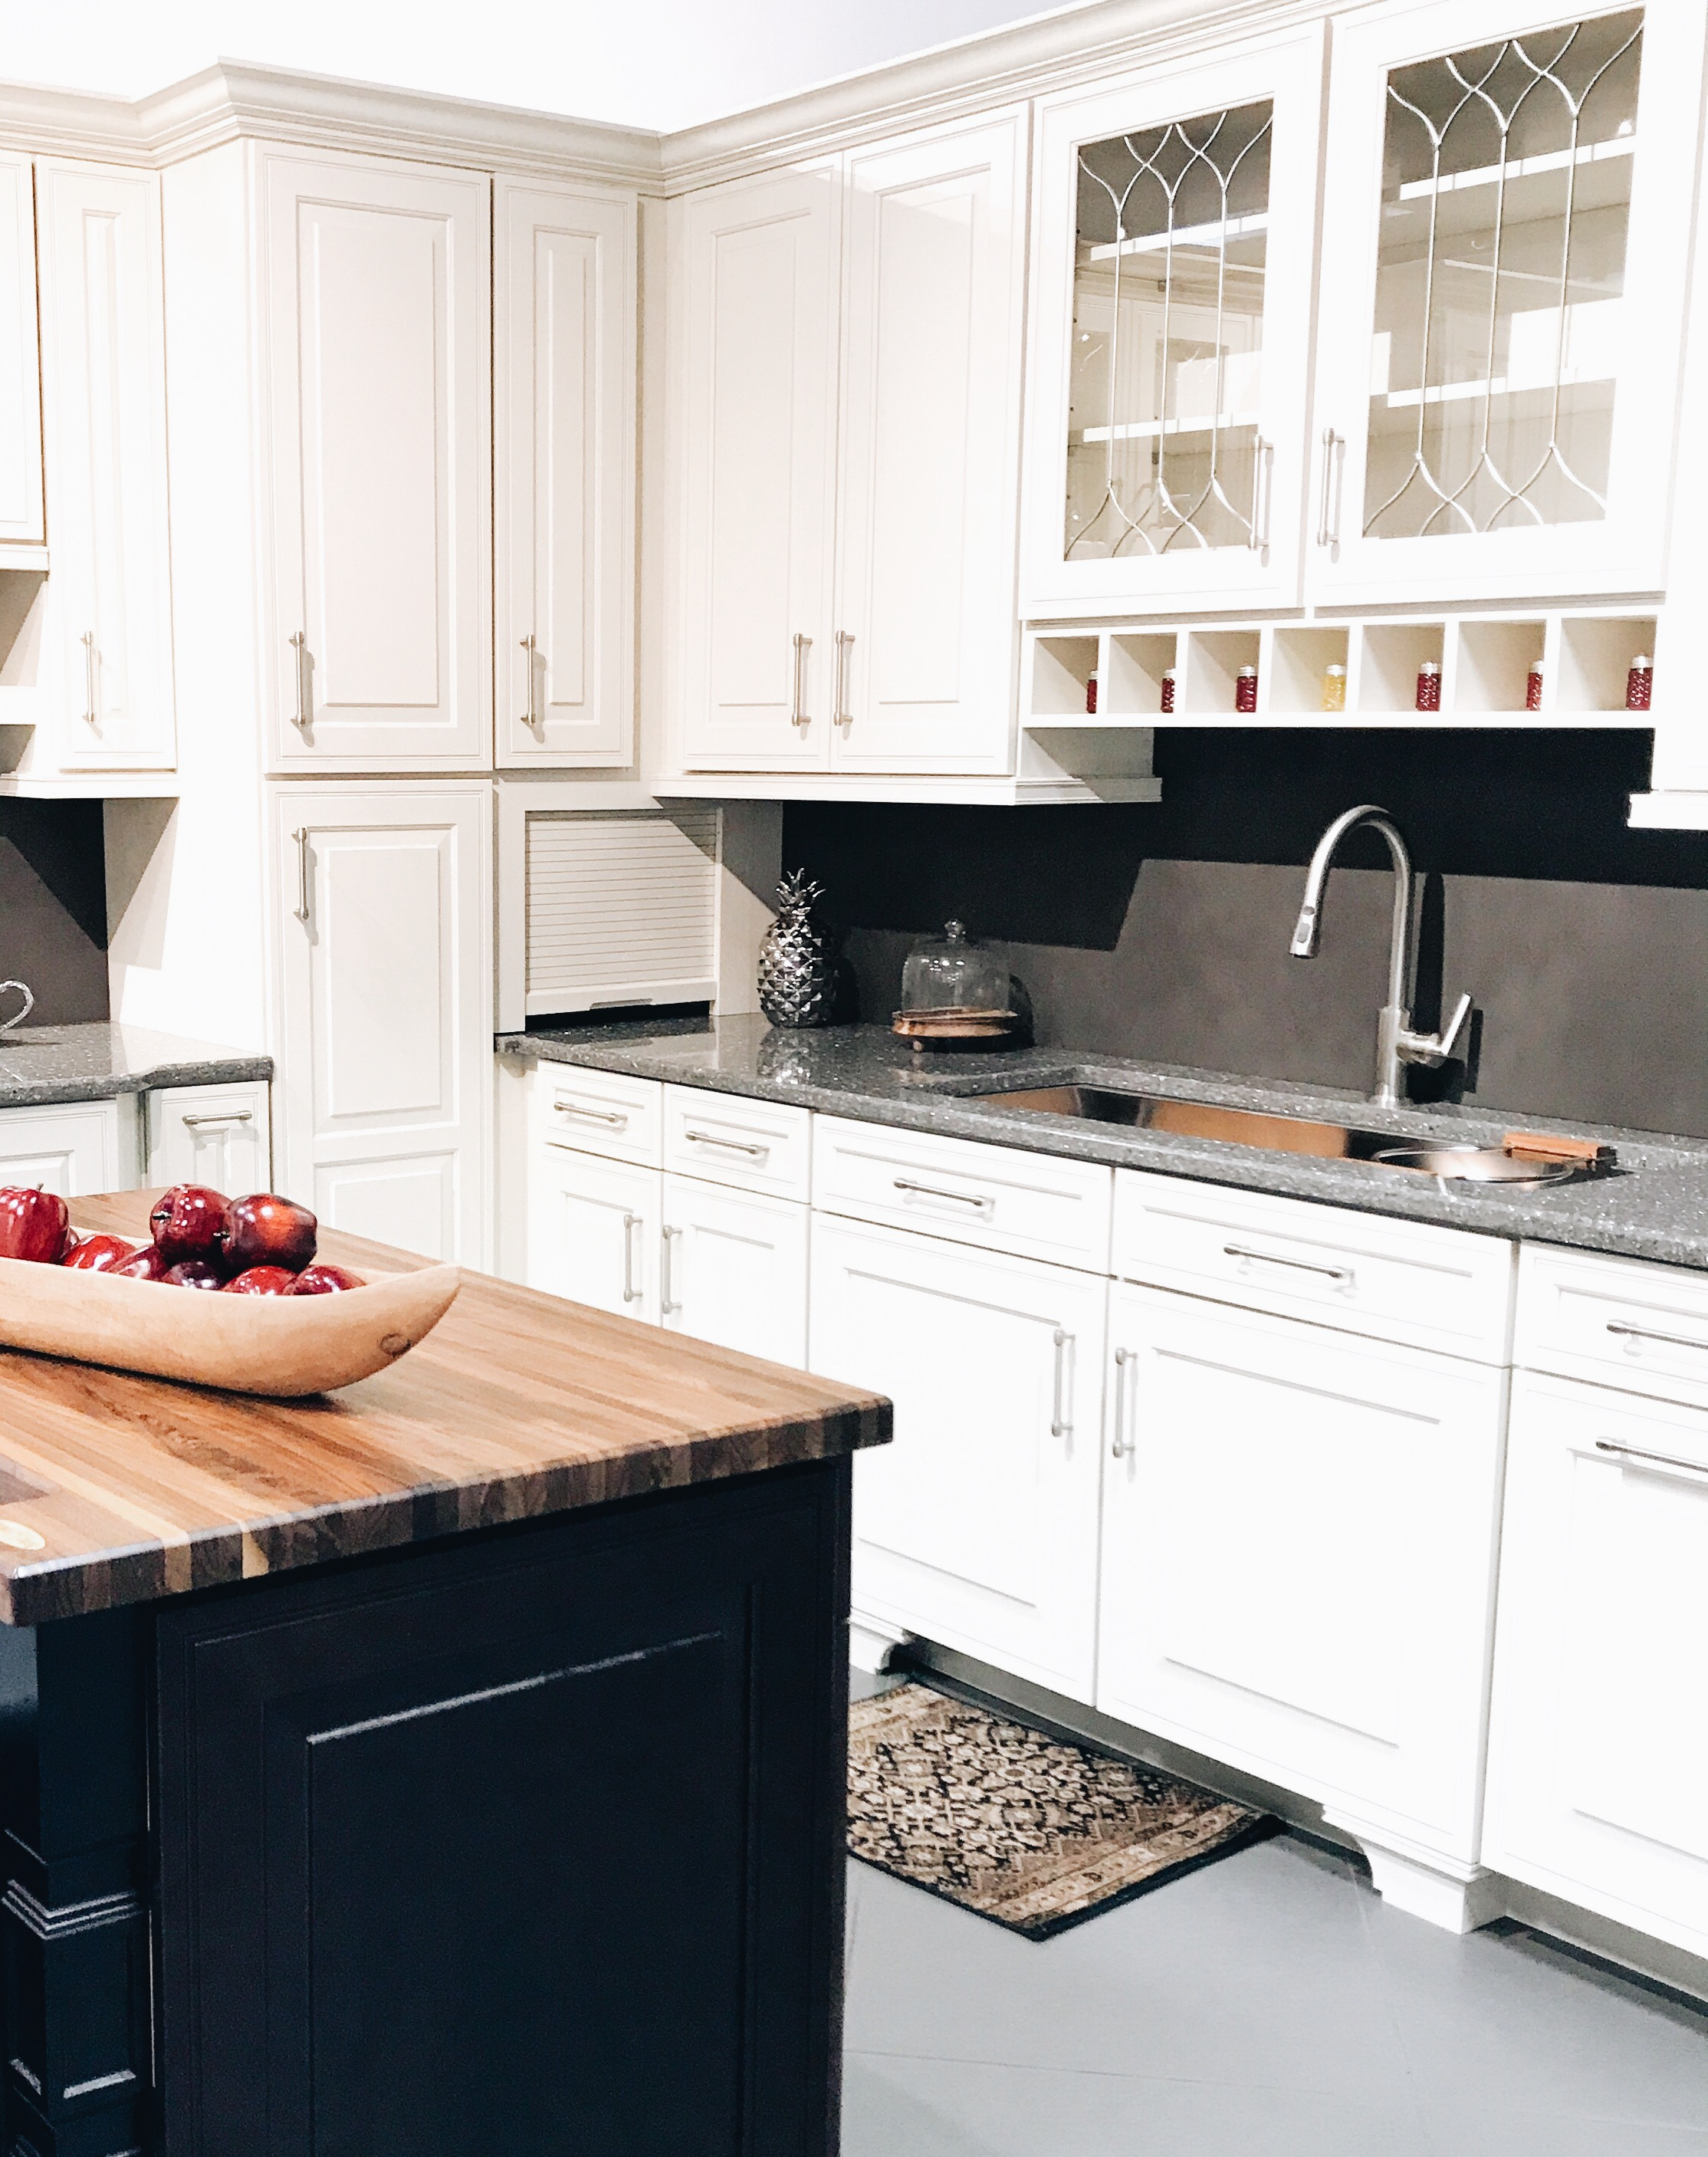 How To Choose and Select Kitchen Cabinets For Your Home - First Thyme Mom. Dark & How To Choose Kitchen Cabinets For Your Home \u2014 First Thyme Mom